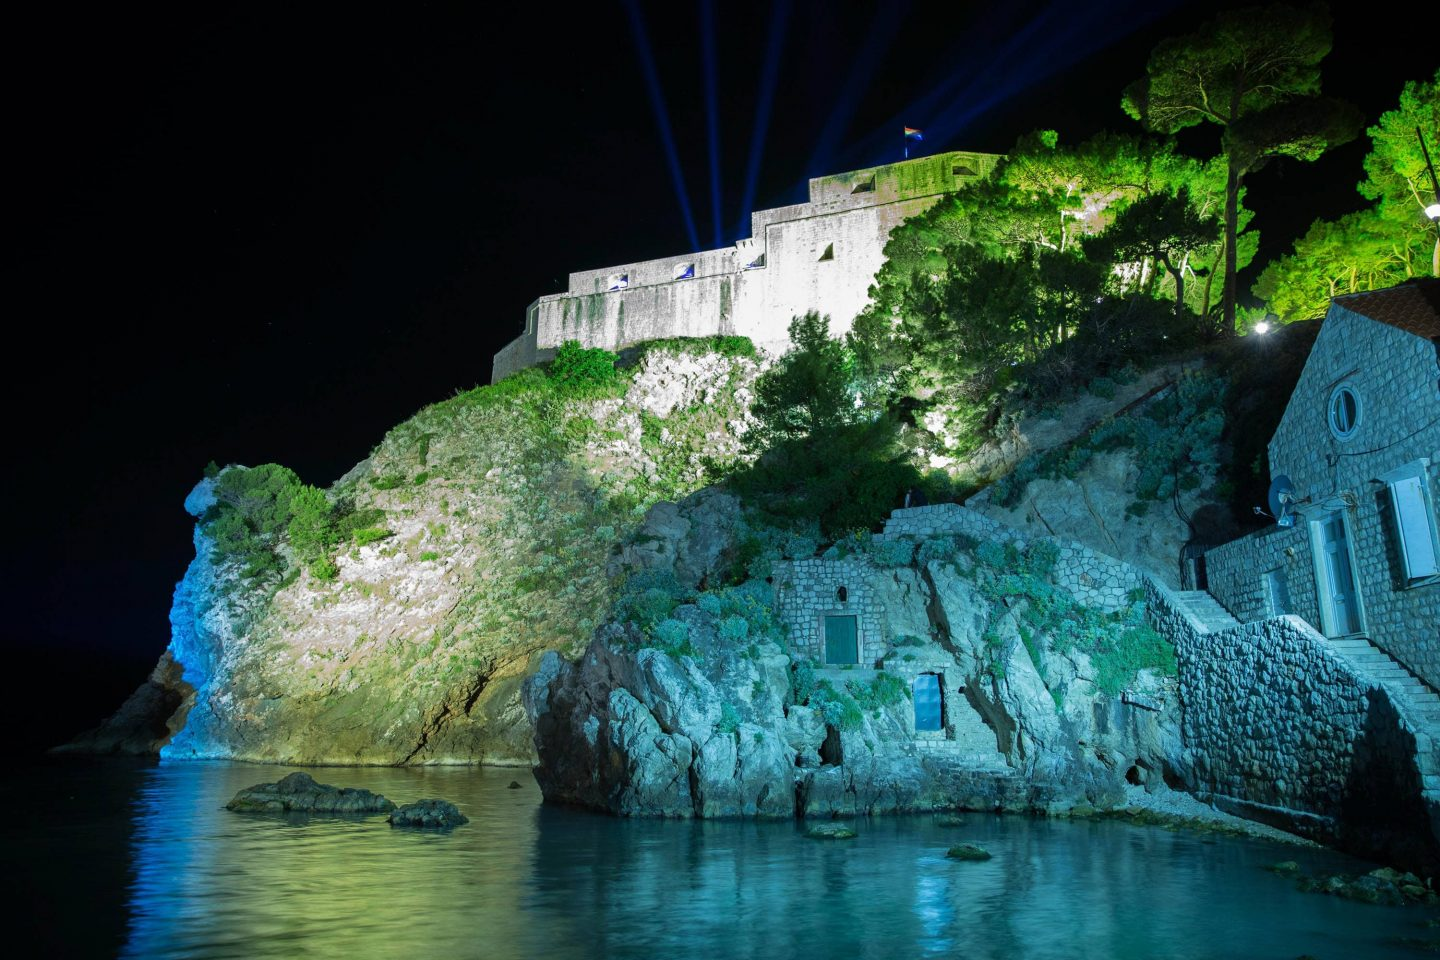 Fort Lovrijenac at night at this Dubrovnik wedding in Croatia | Photo by Robert Fairer